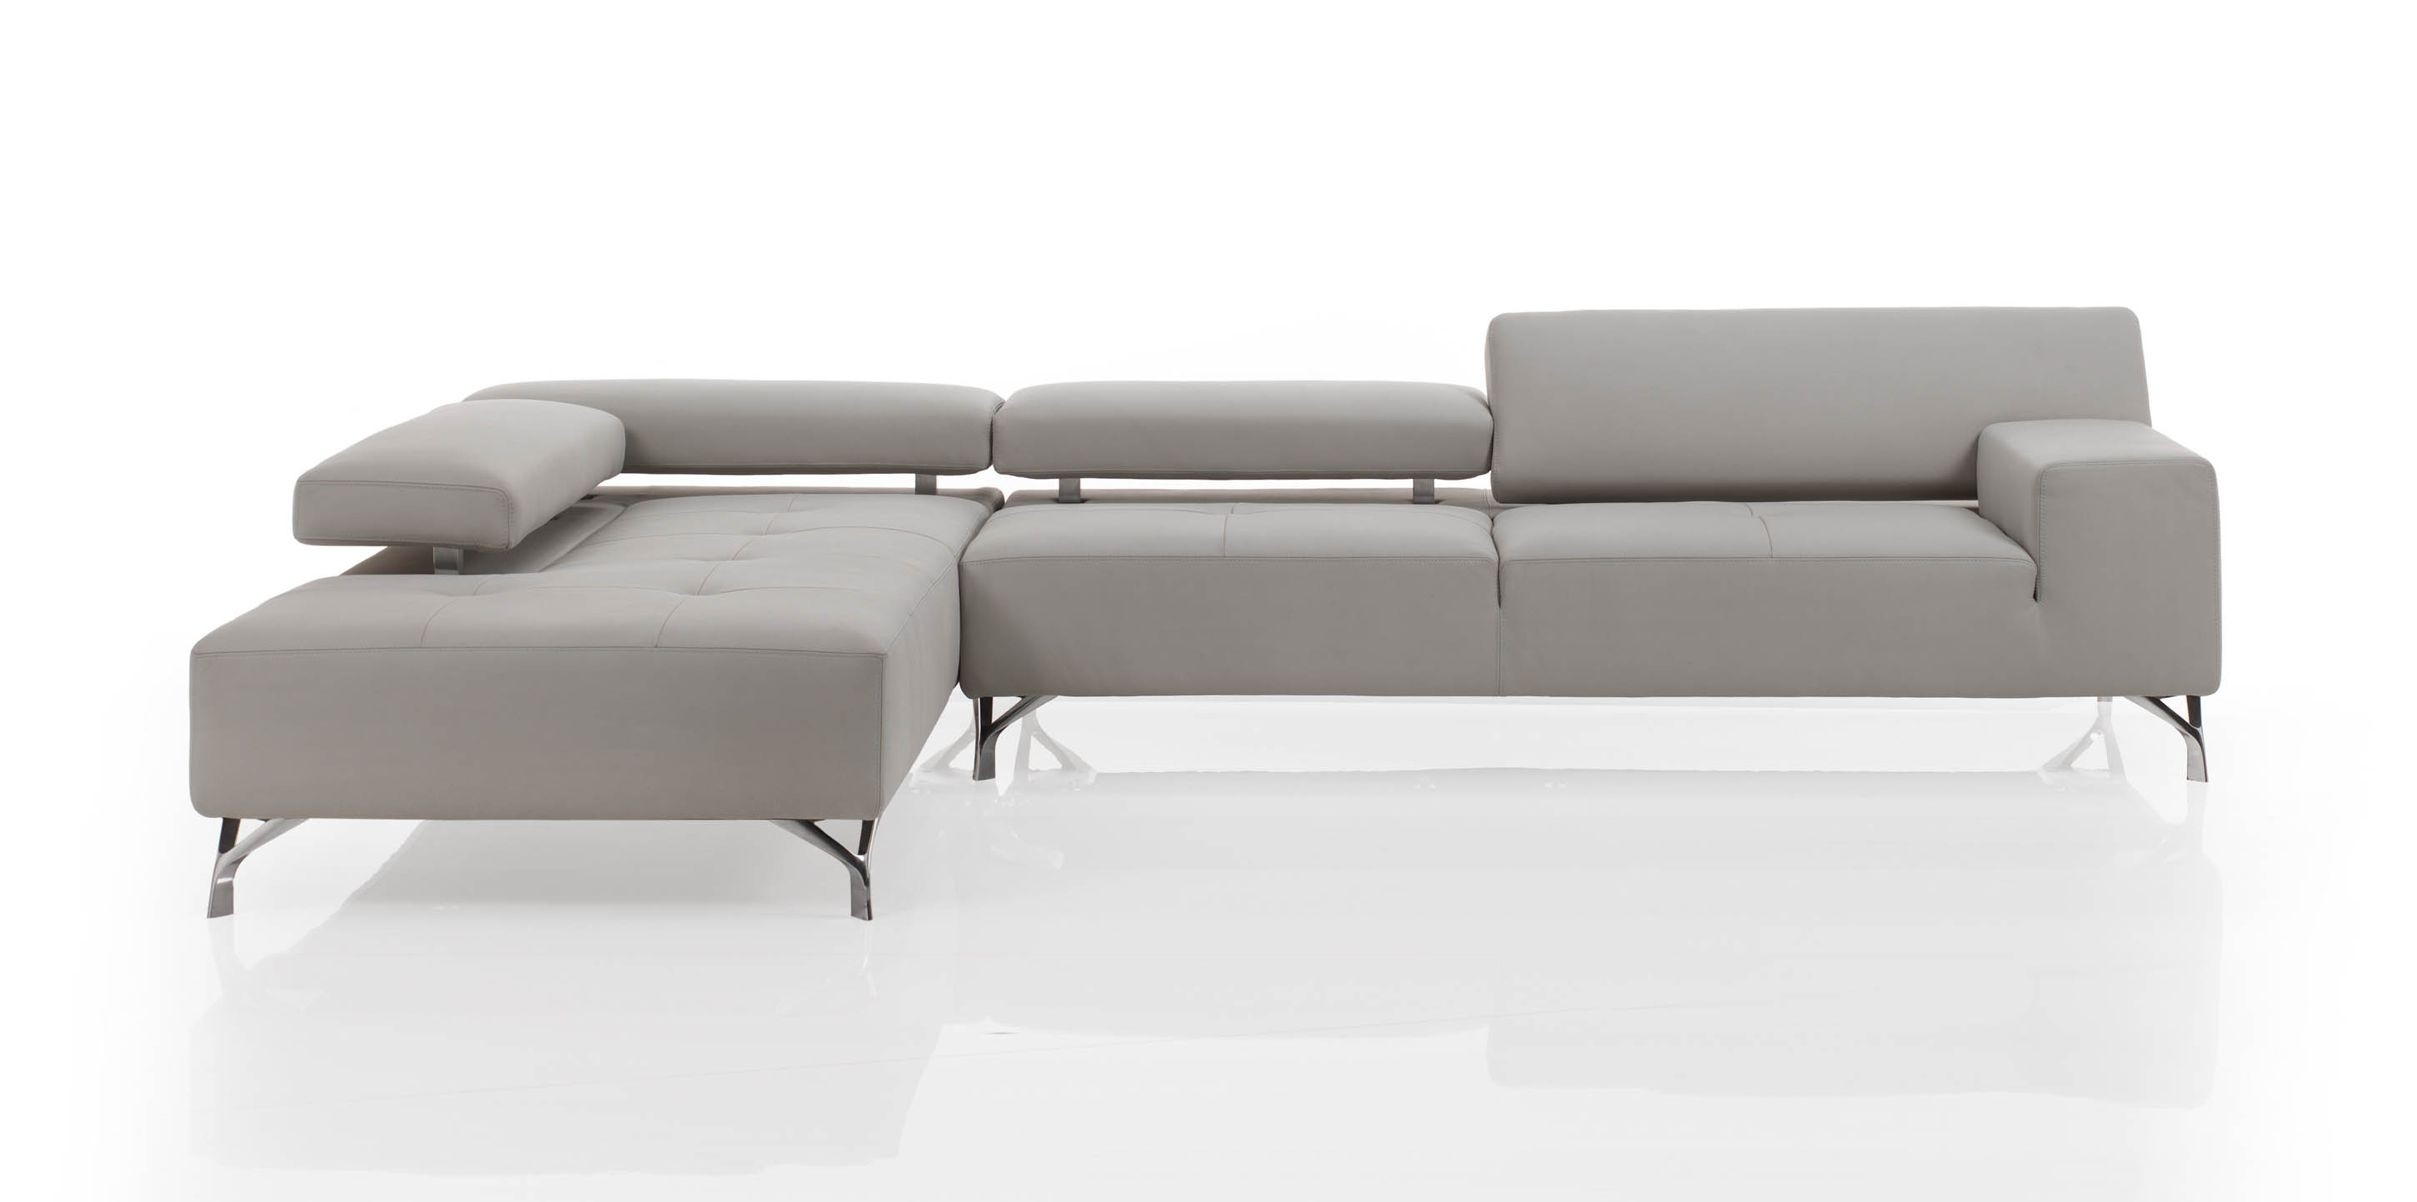 Miami Modern Sectional Sofa | Cierre Imbottiti Regarding Miami Sectional Sofas (View 2 of 10)